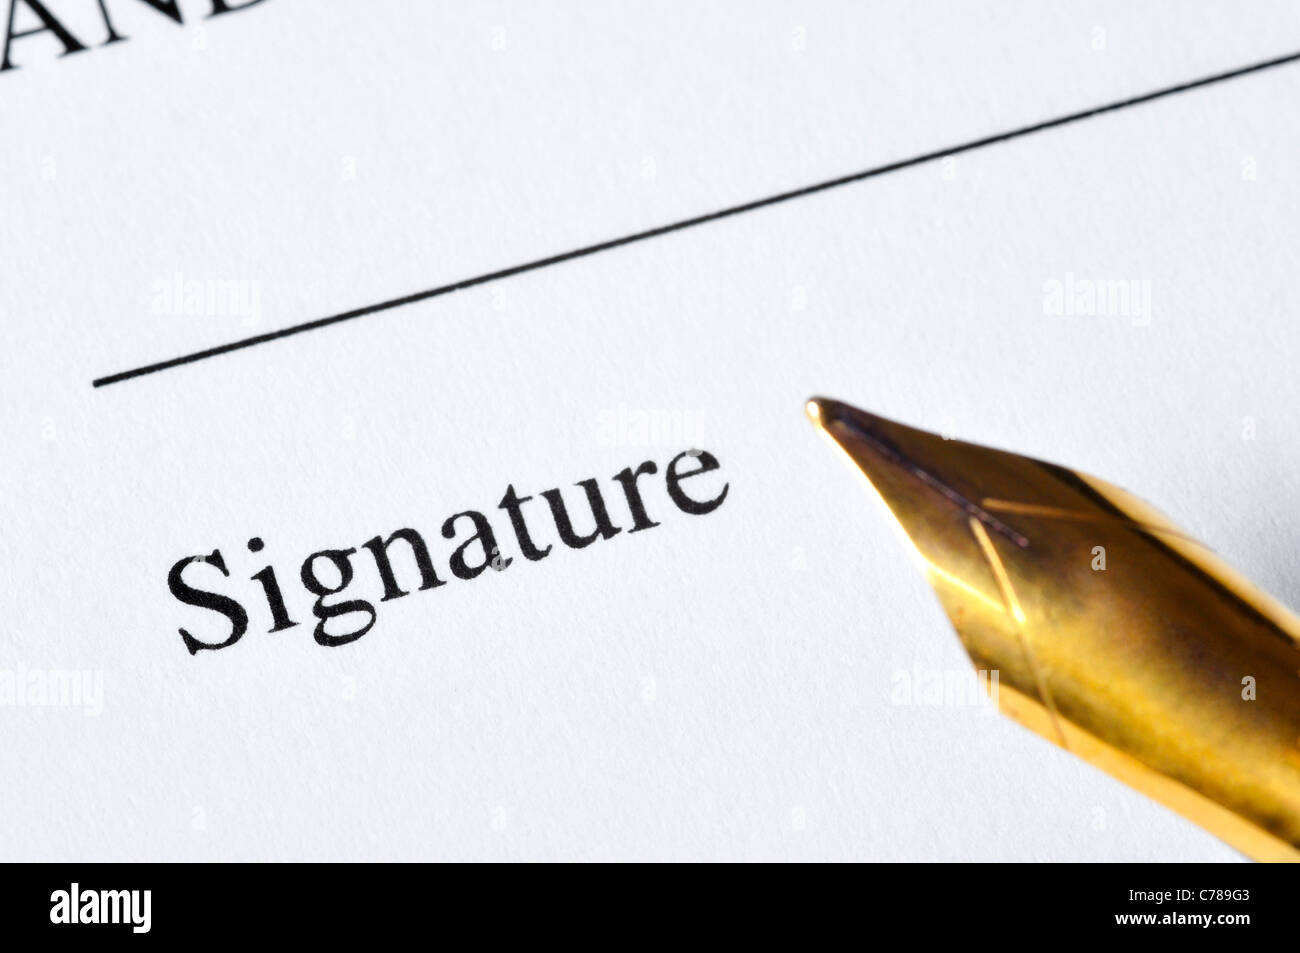 A document ready to be signed, with a pen by the side - Stock Image